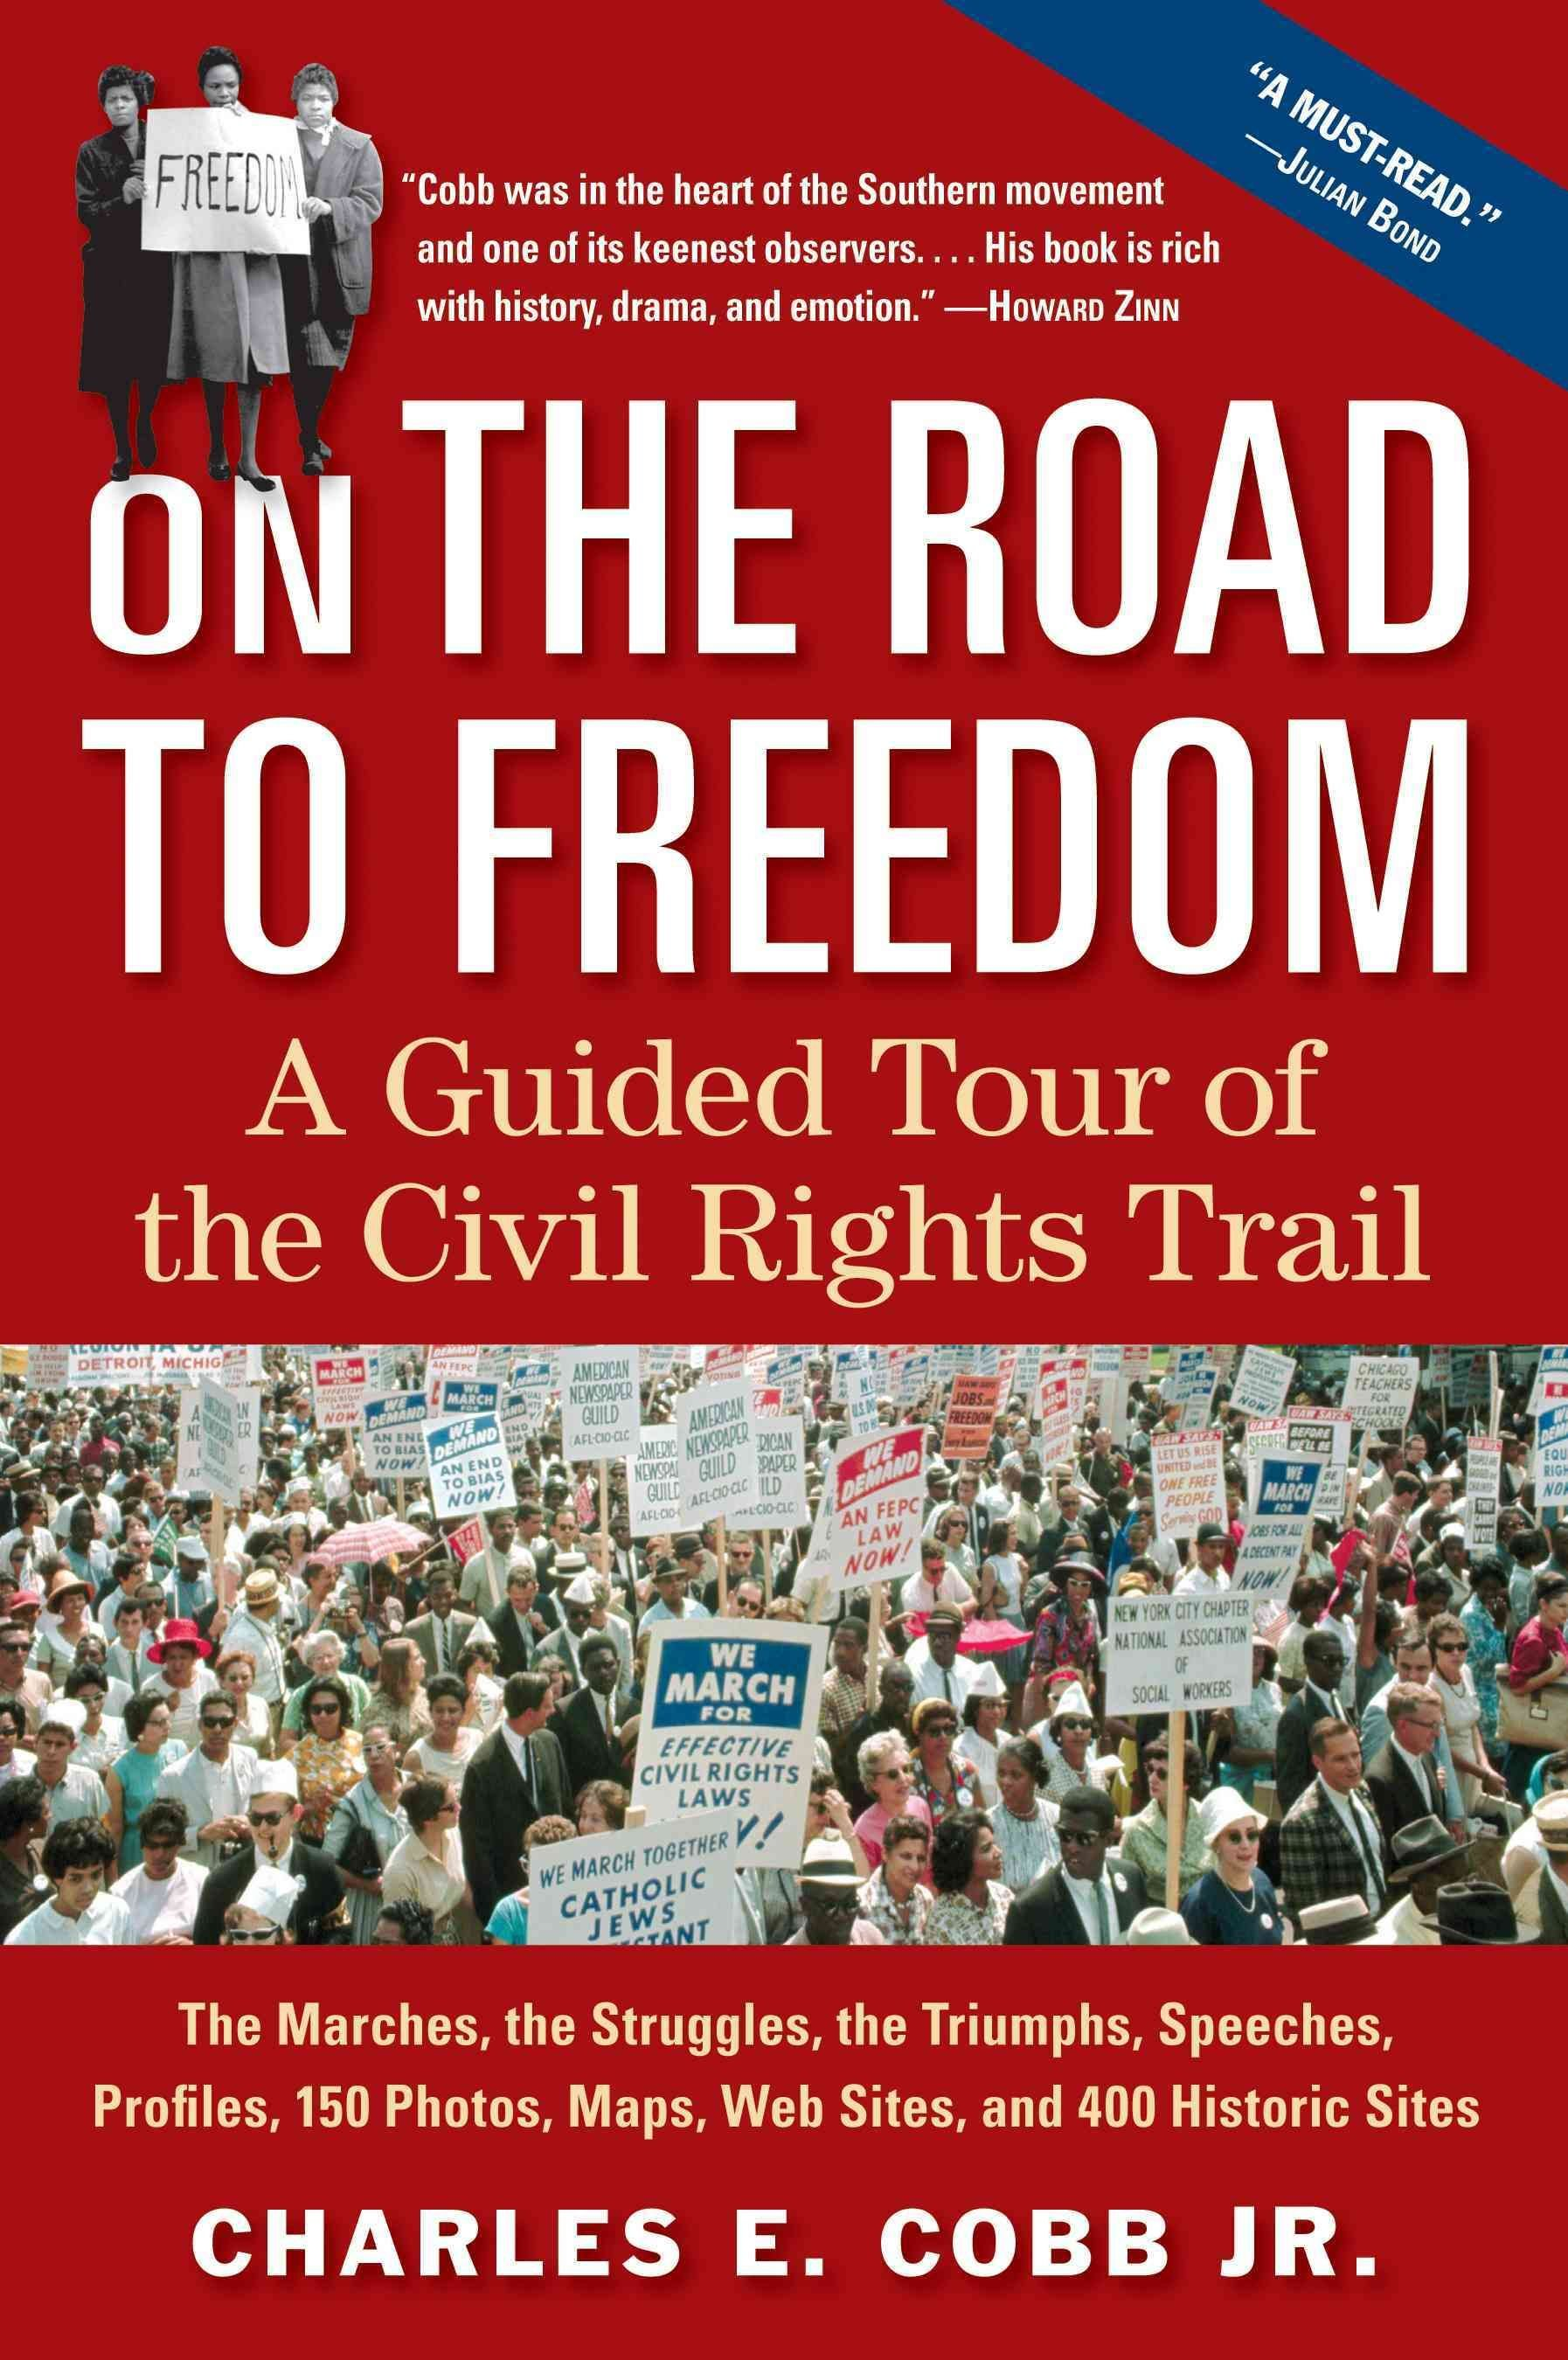 On the Road to Freedom - Charles E. Cobb